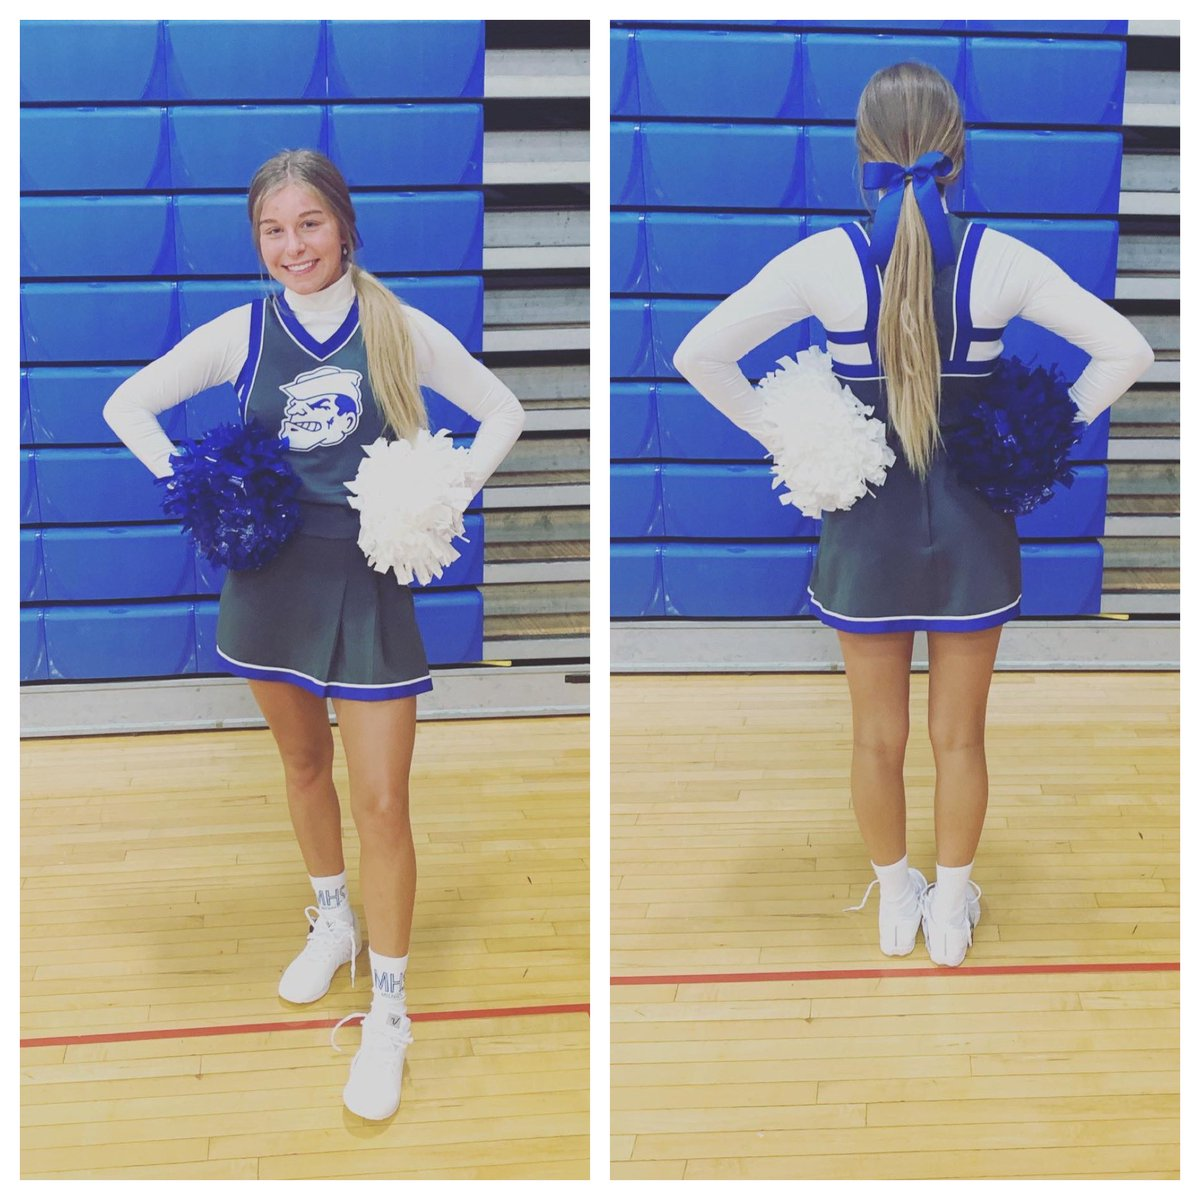 We are IN LOVE with our new @VarsityFashions look for Game Day! #pleatedskirt pic.twitter.com/eq6KFixwoD